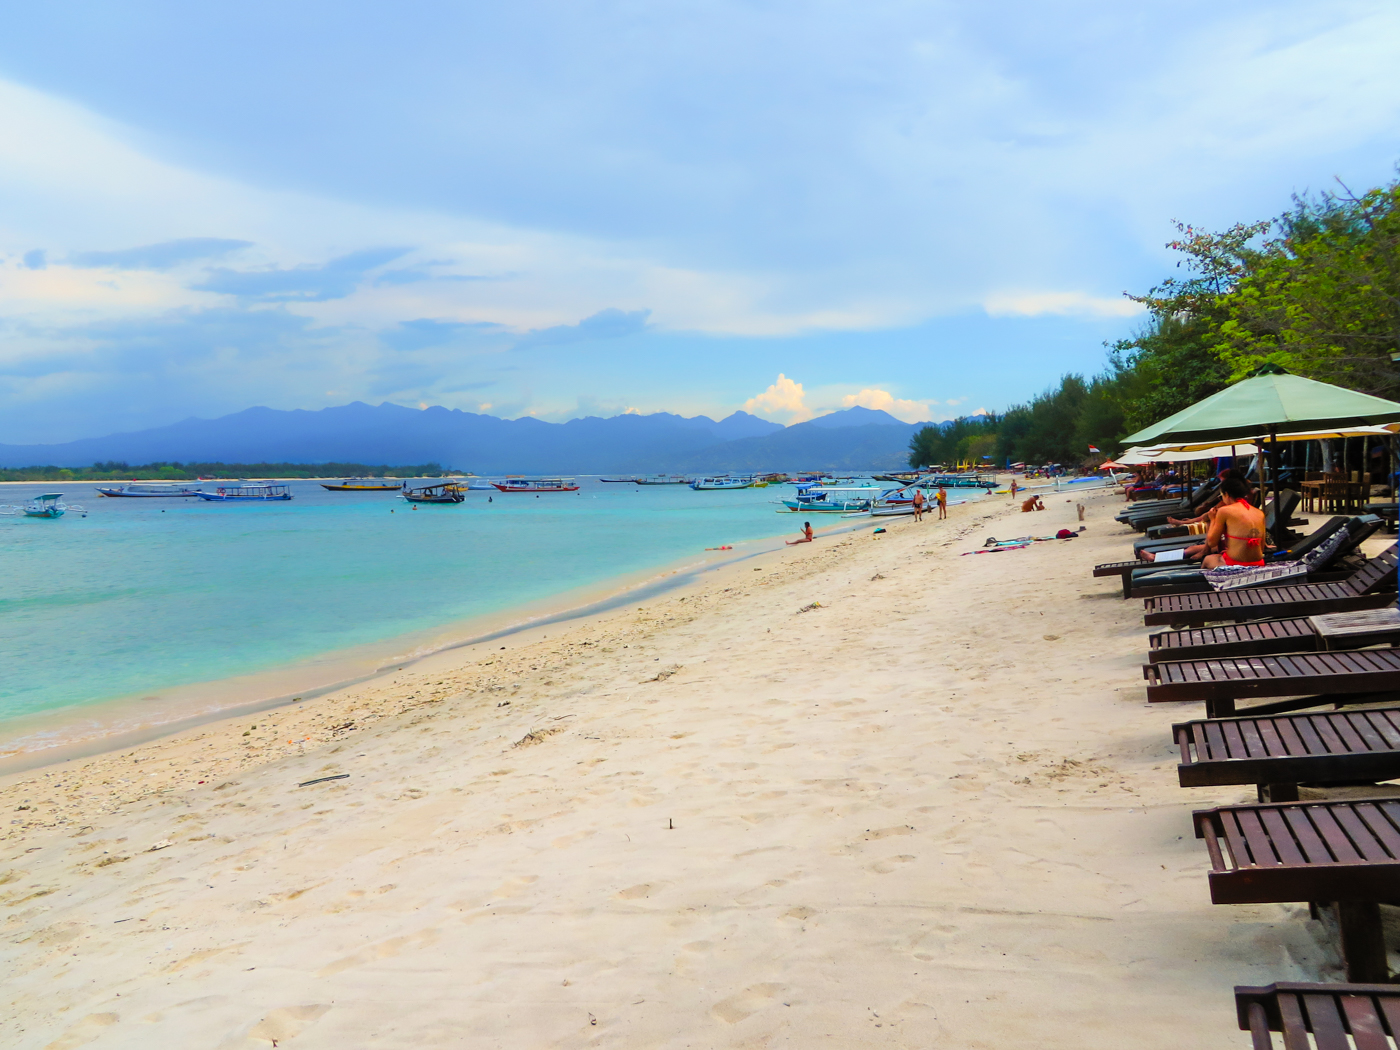 How to get to the Gili Islands